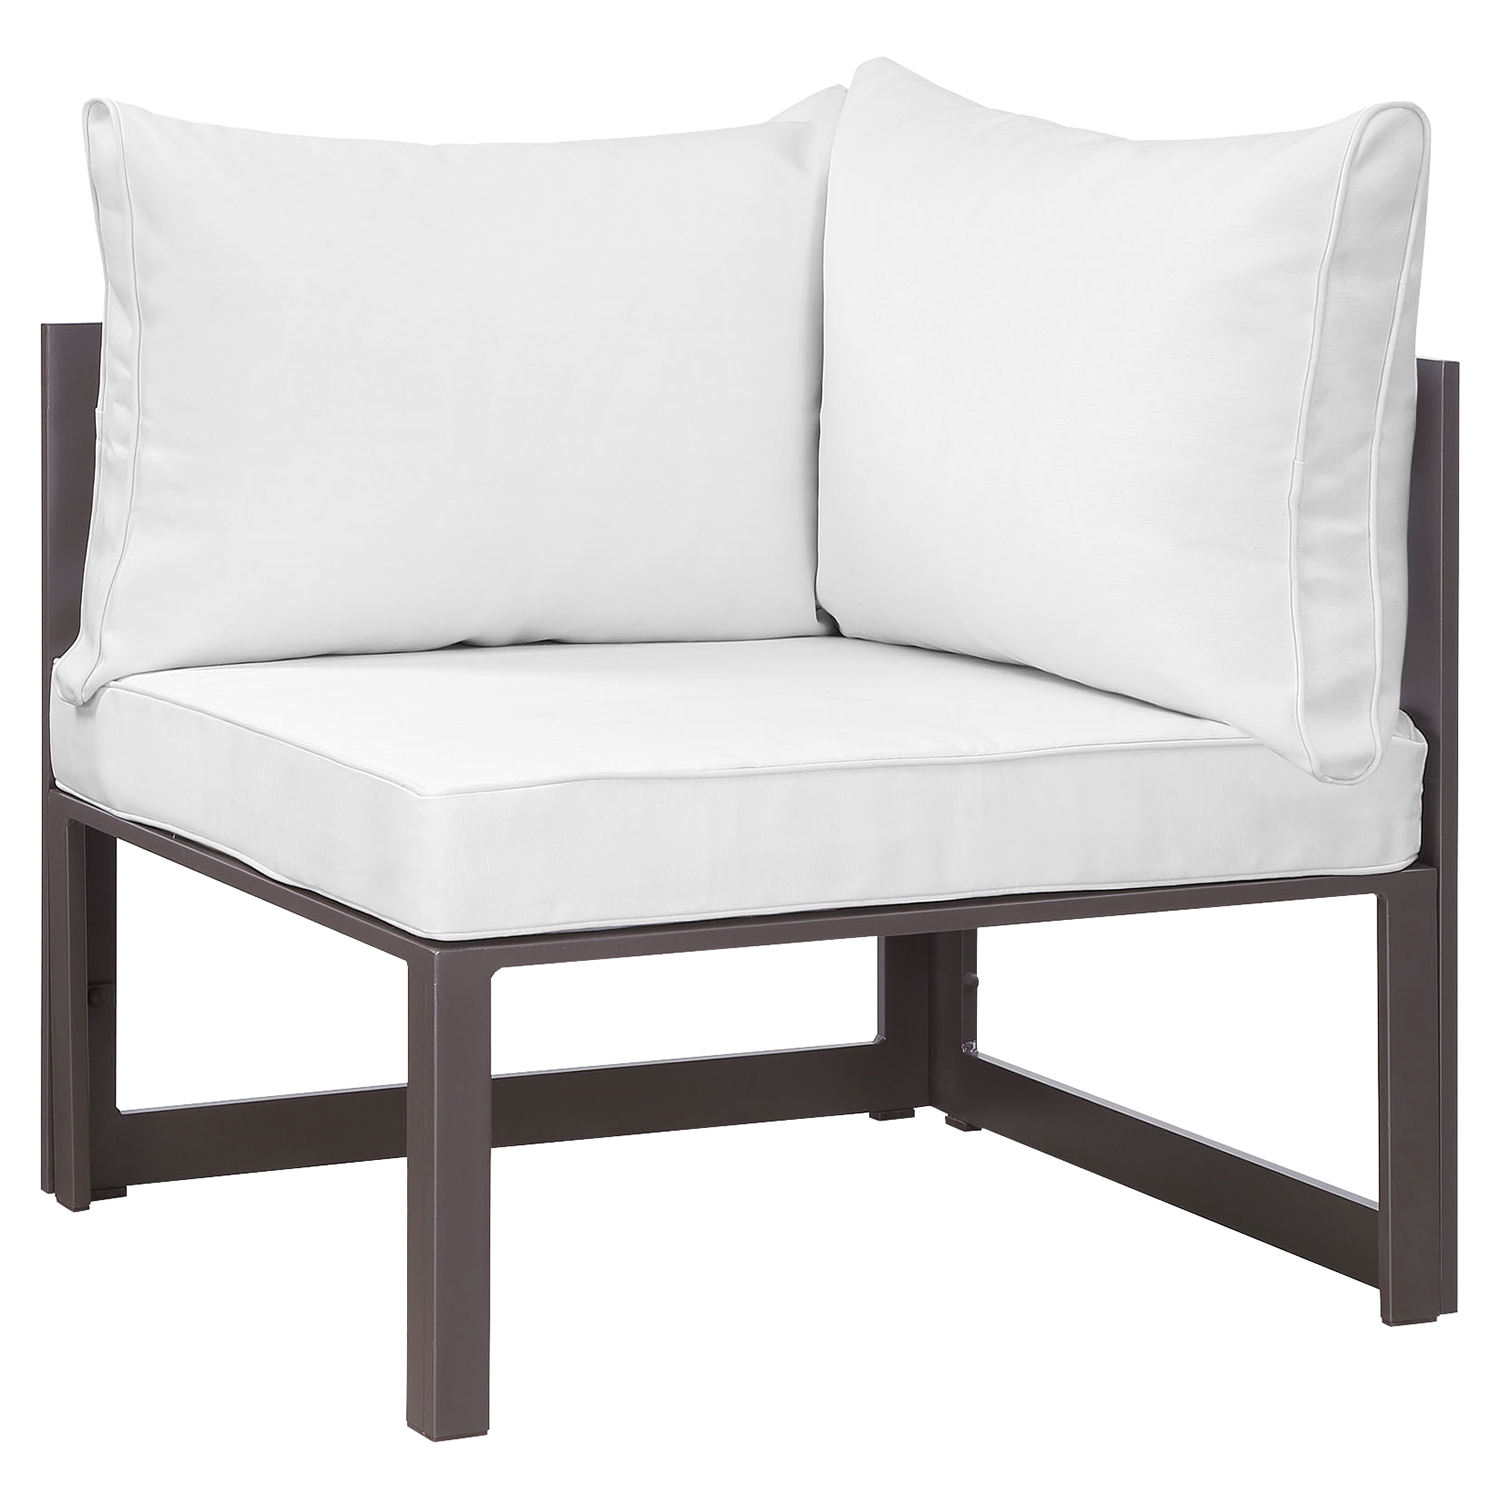 Fortuna 9 Pieces Patio Sectional Sofa Set - Brown Frame, White Cushion - EEI-1734-BRN-WHI-SET